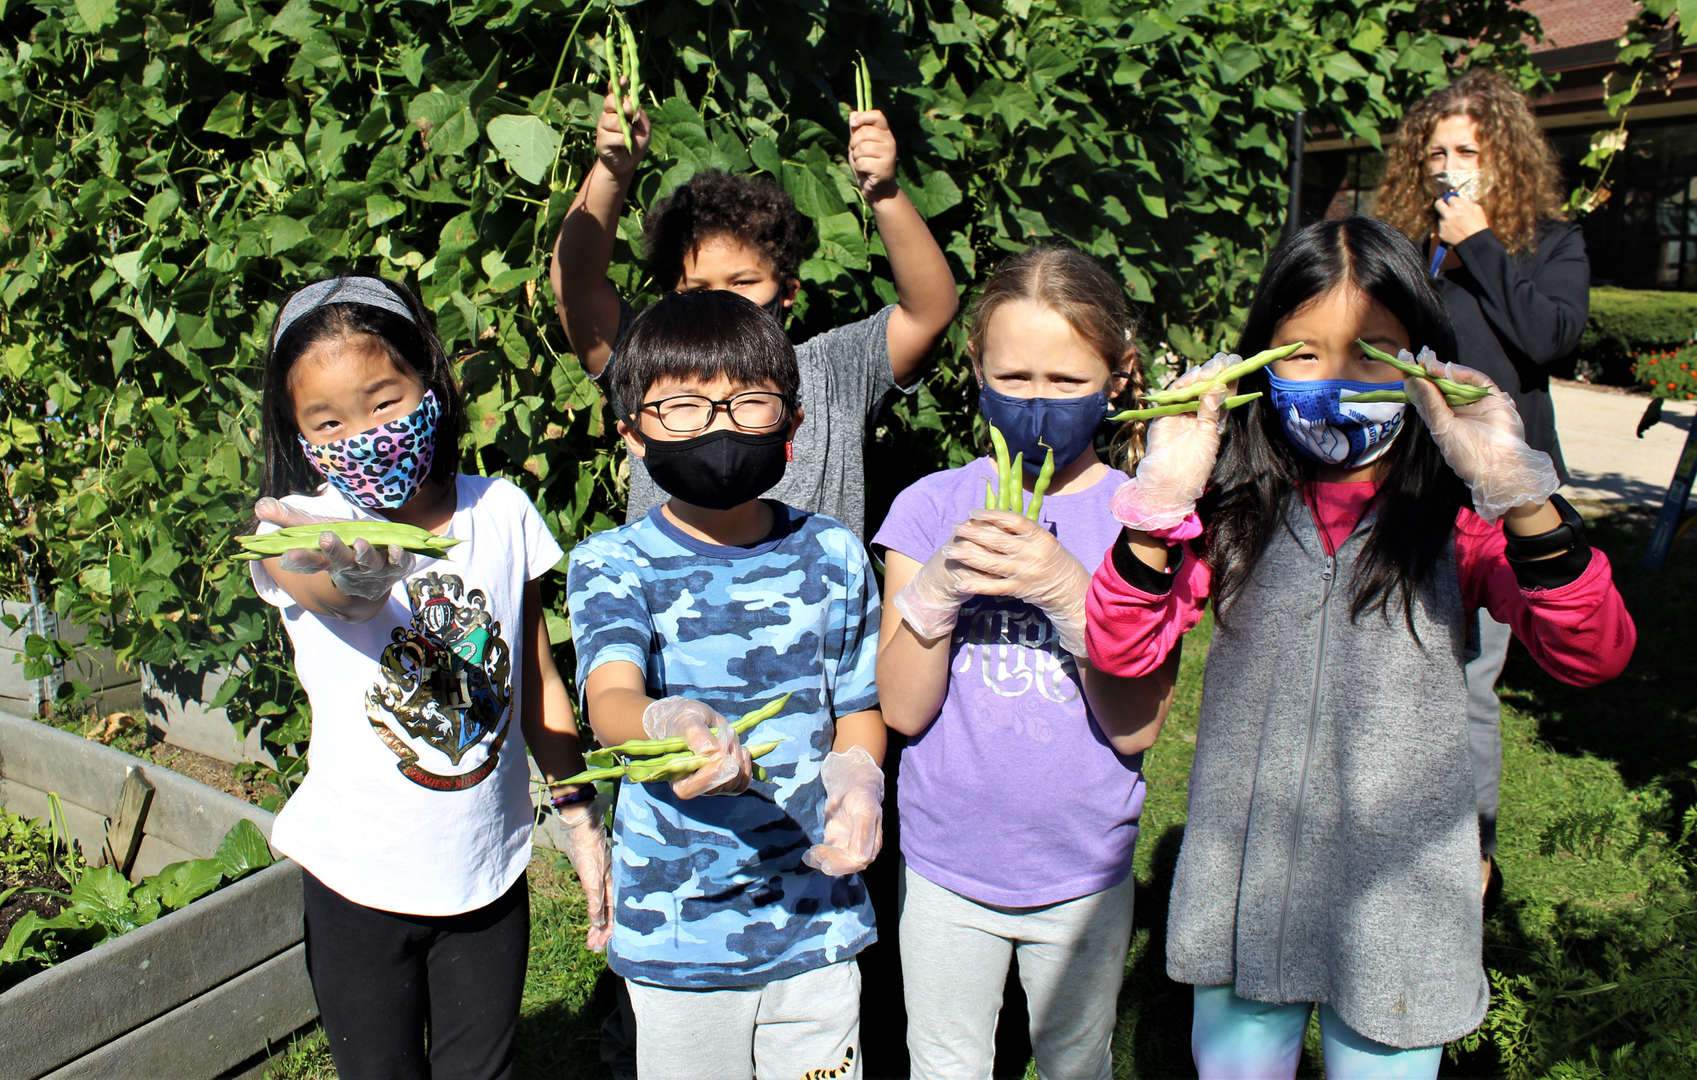 Five students show off the beans they harvested from the garden as their teacher looks on.